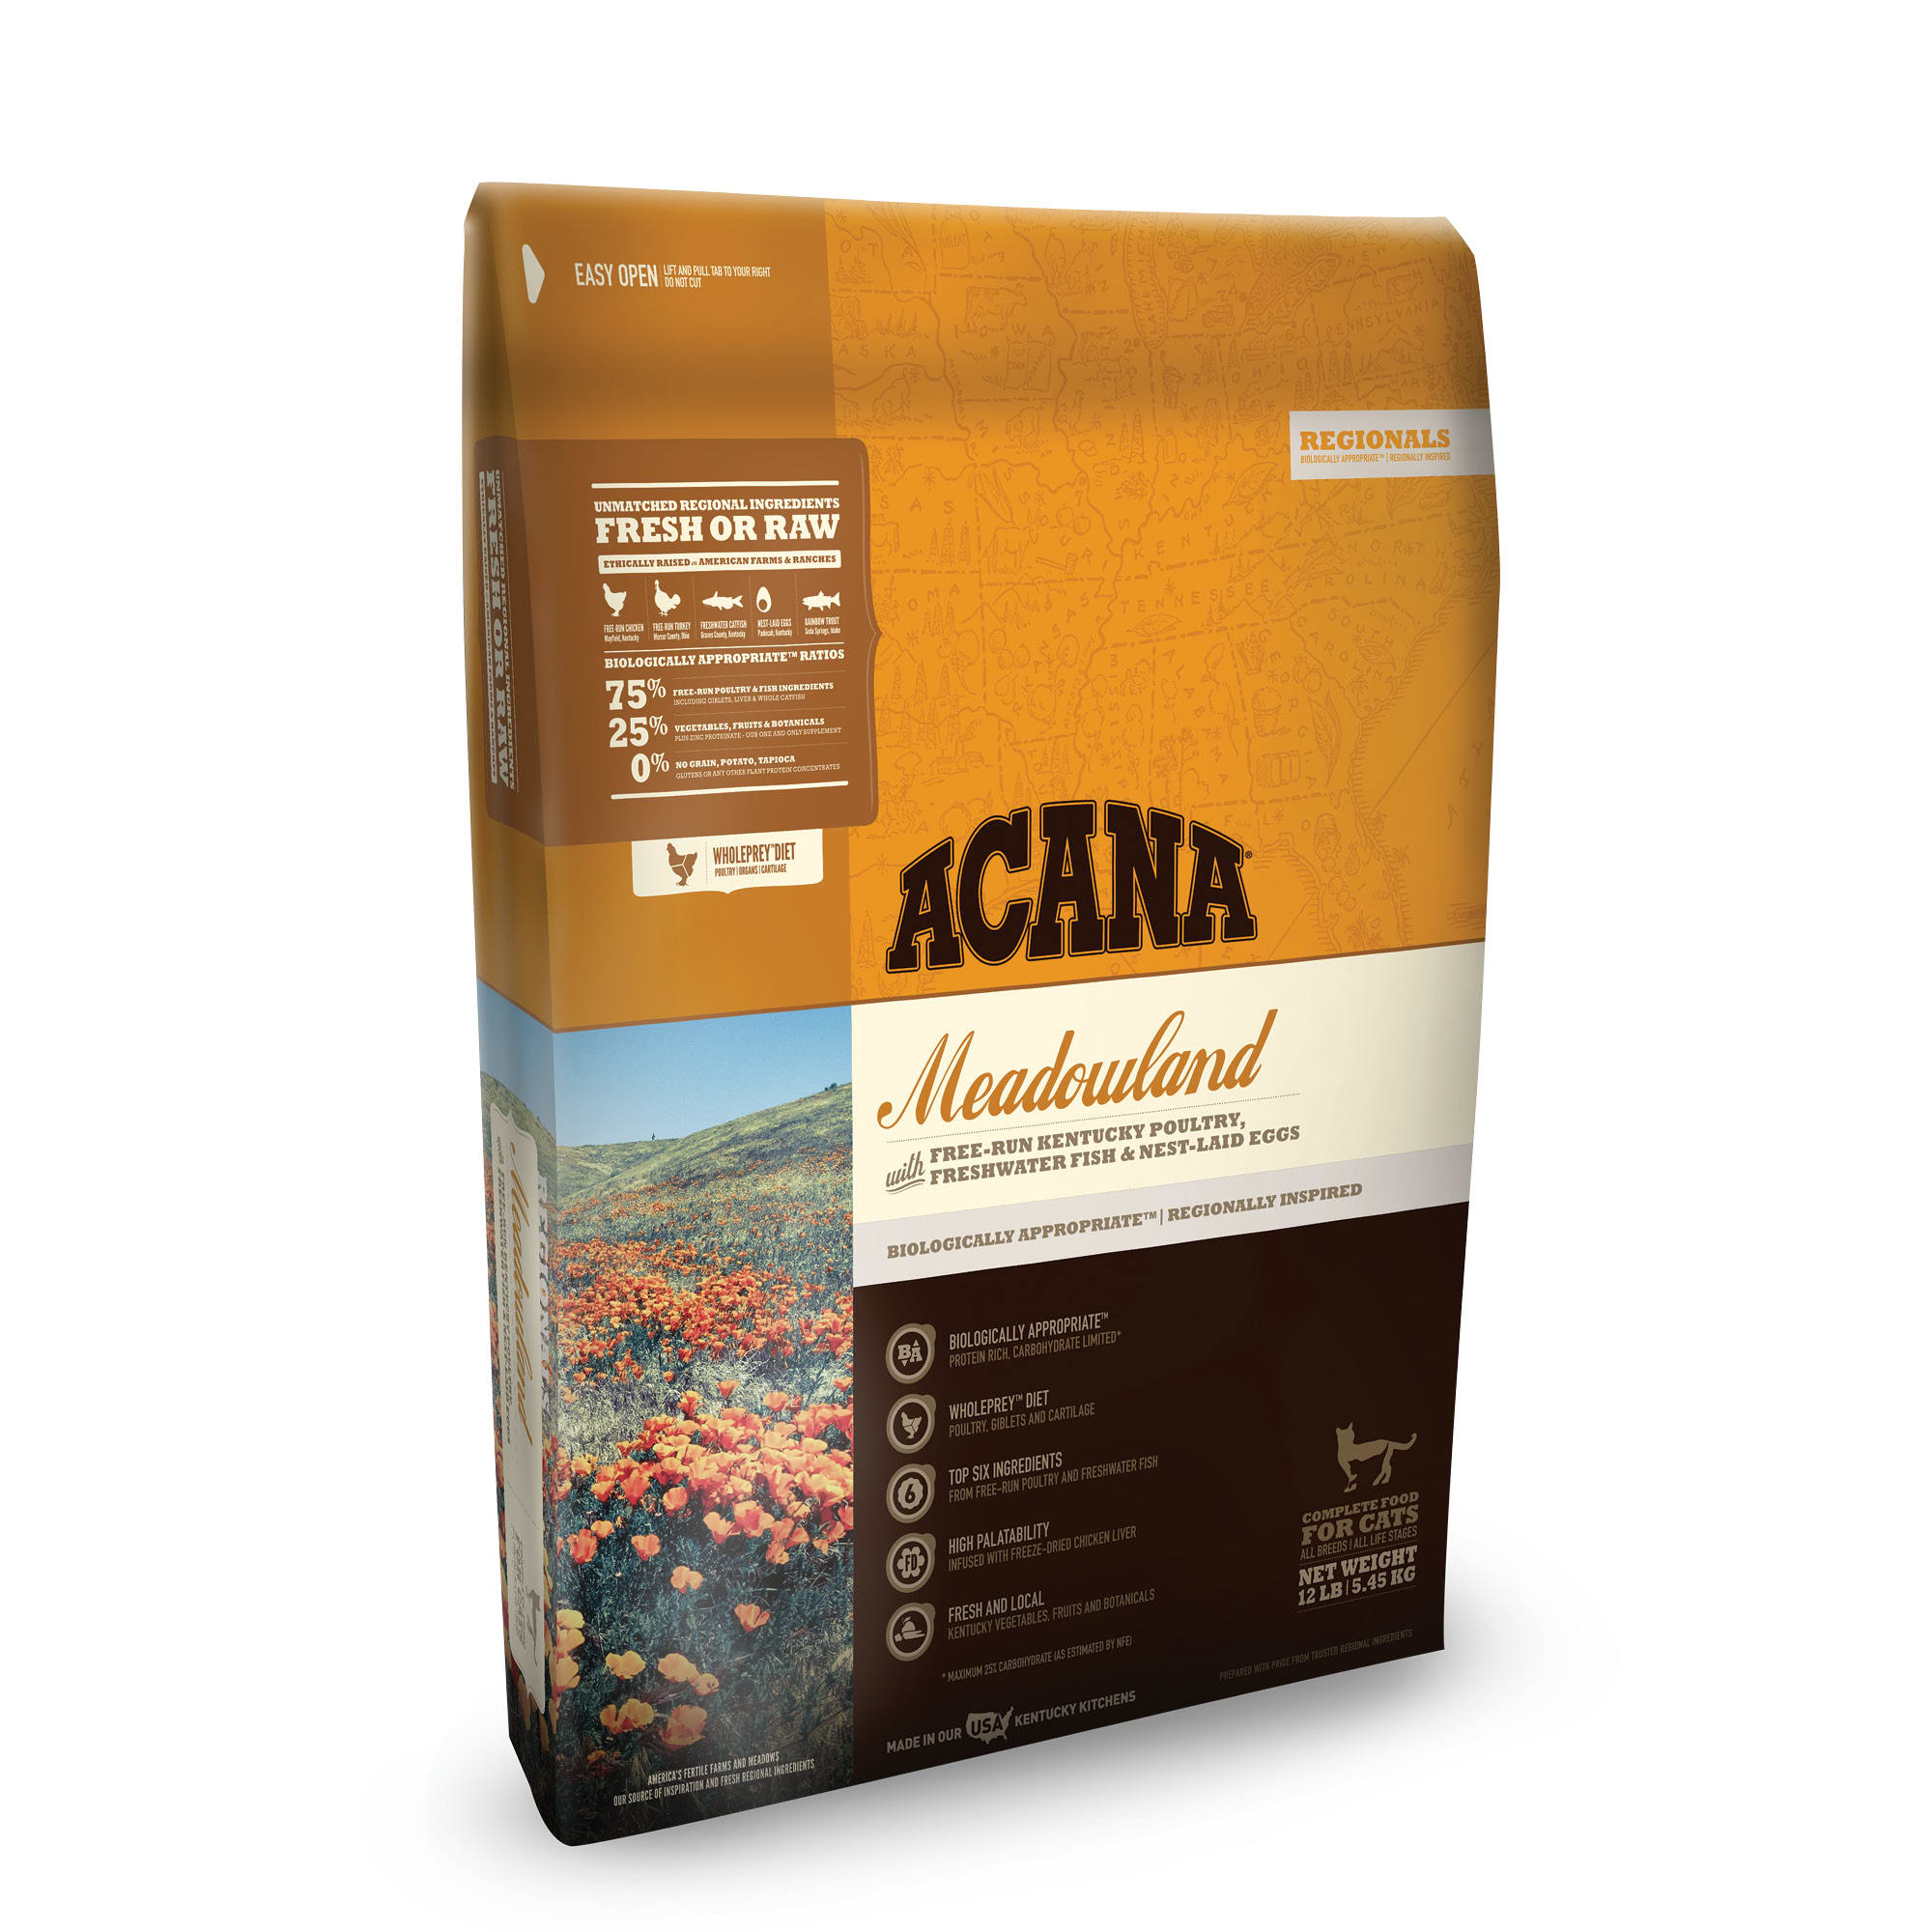 ACANA Grain-Free Meadowlands Chicken Turkey Fish and Cage-Free Eggs Dry Cat Food